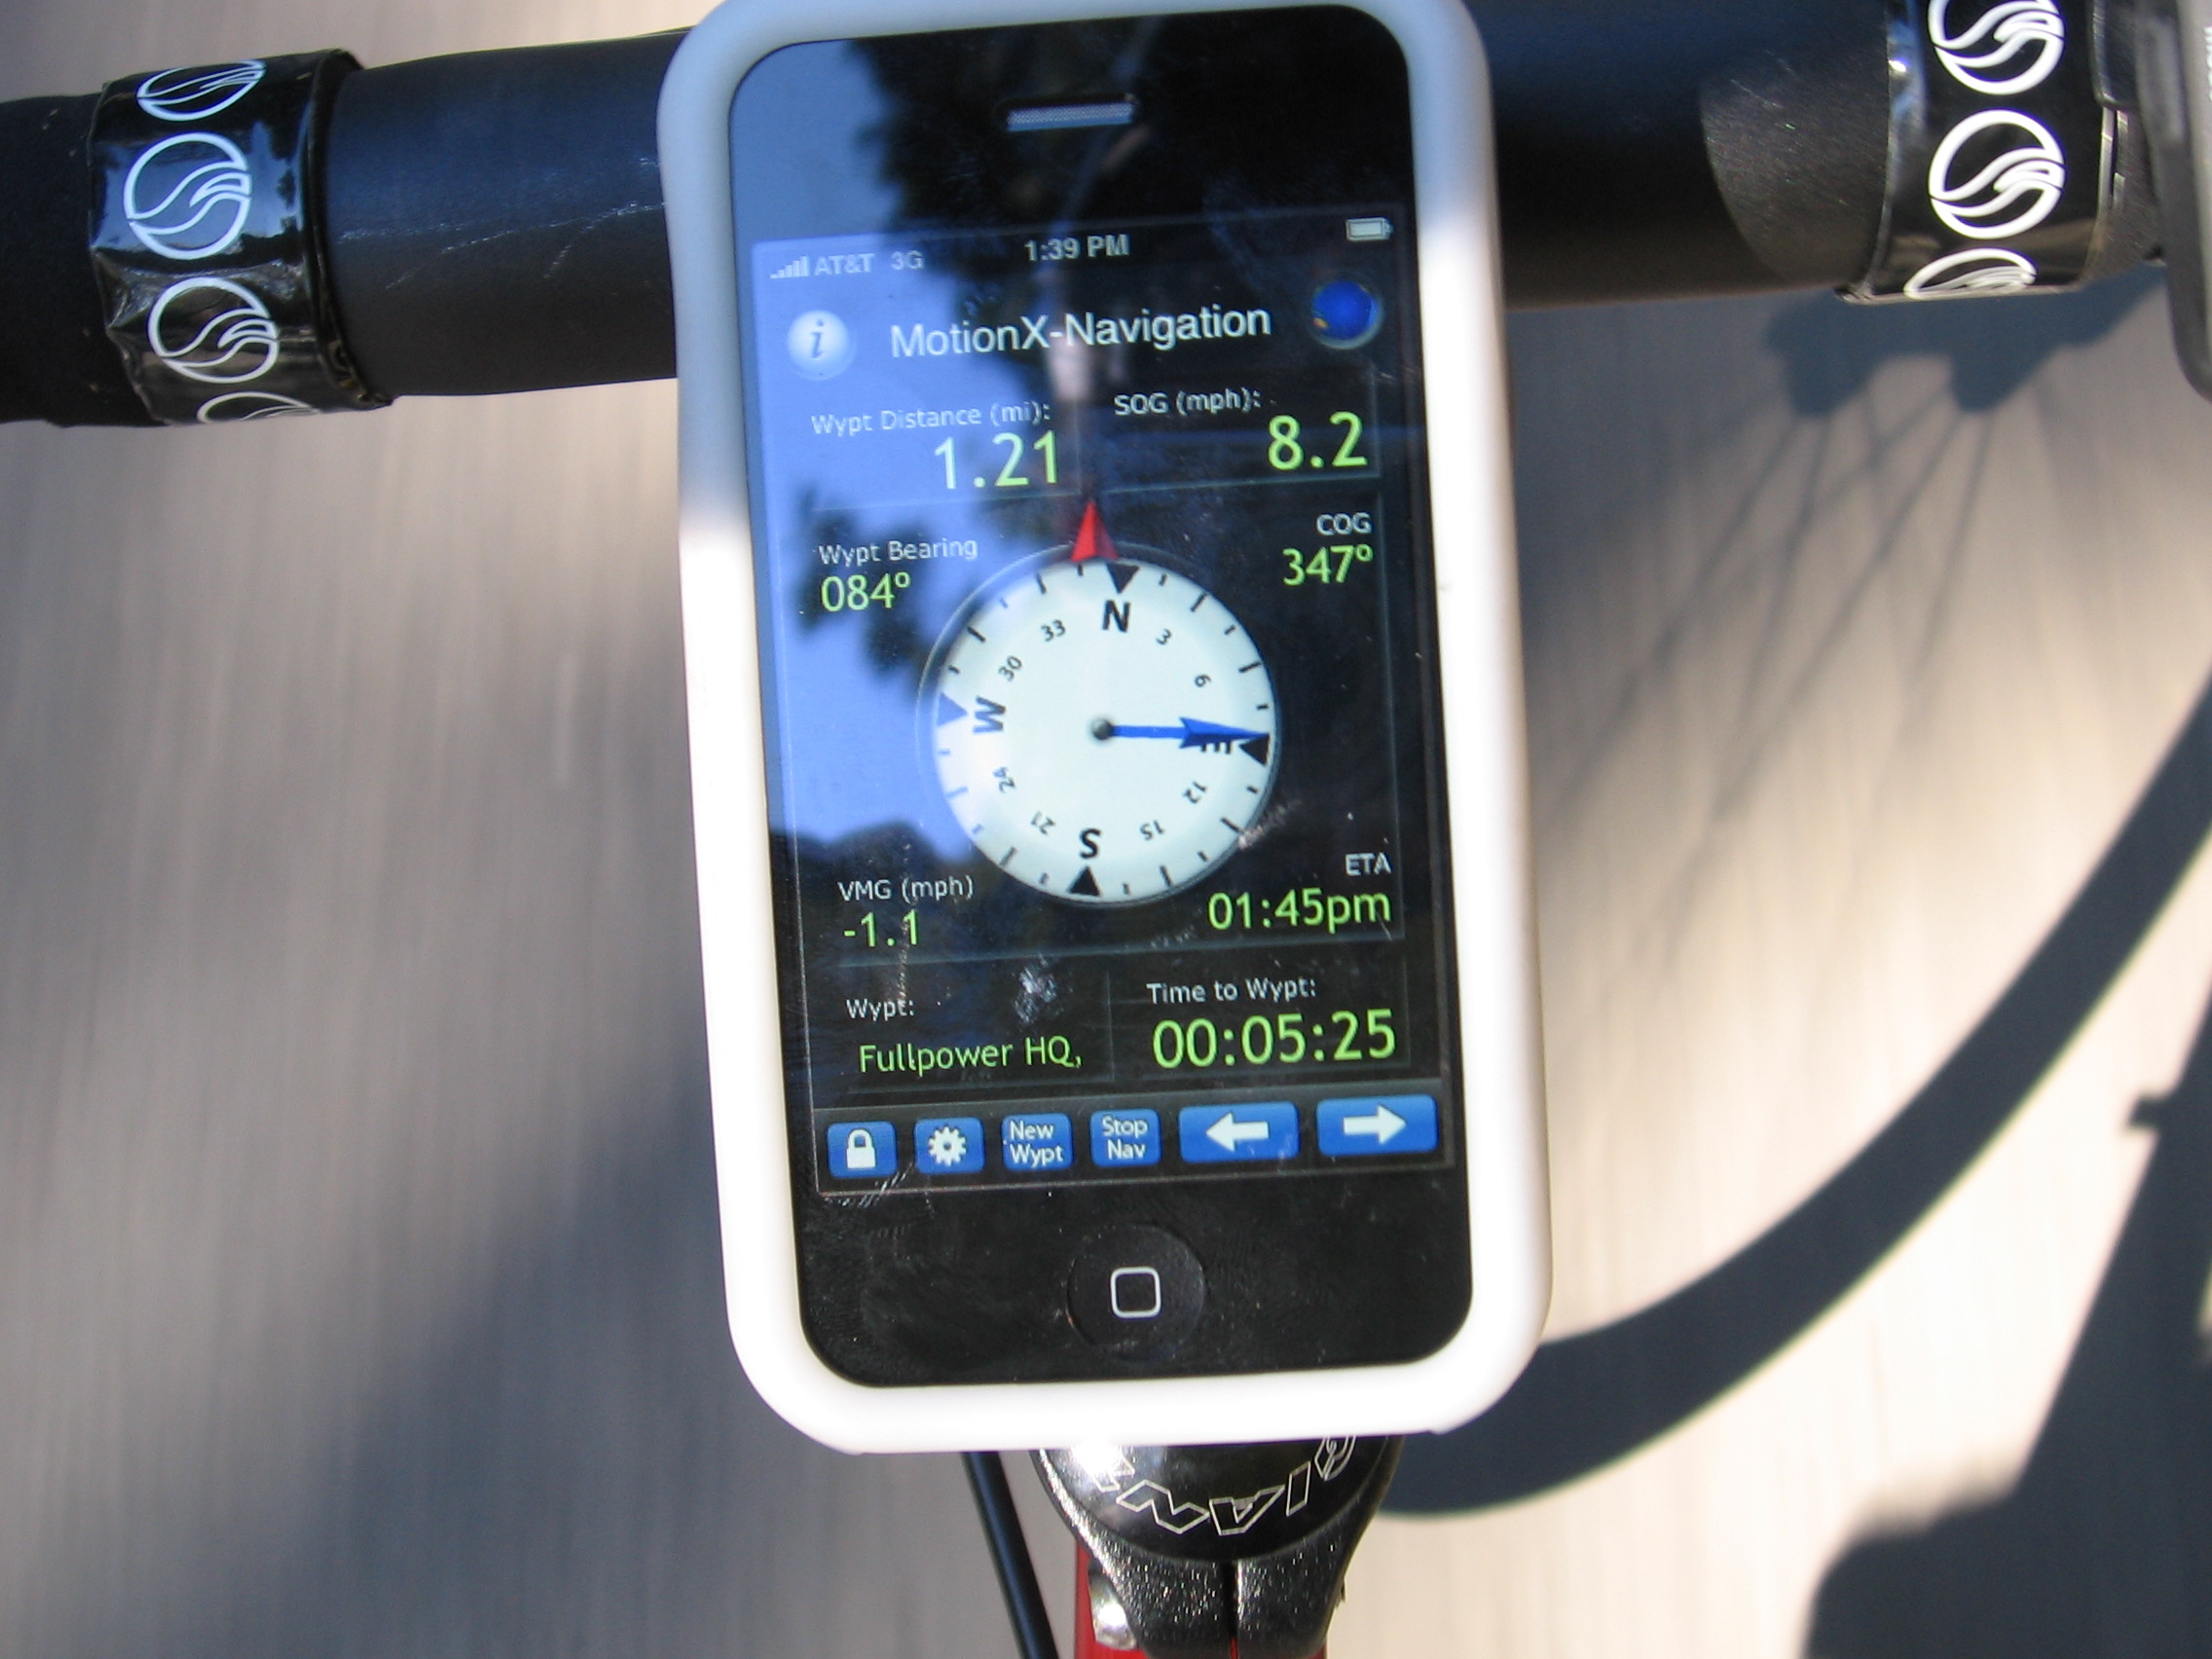 File:GPS on smartphone cycling.JPG